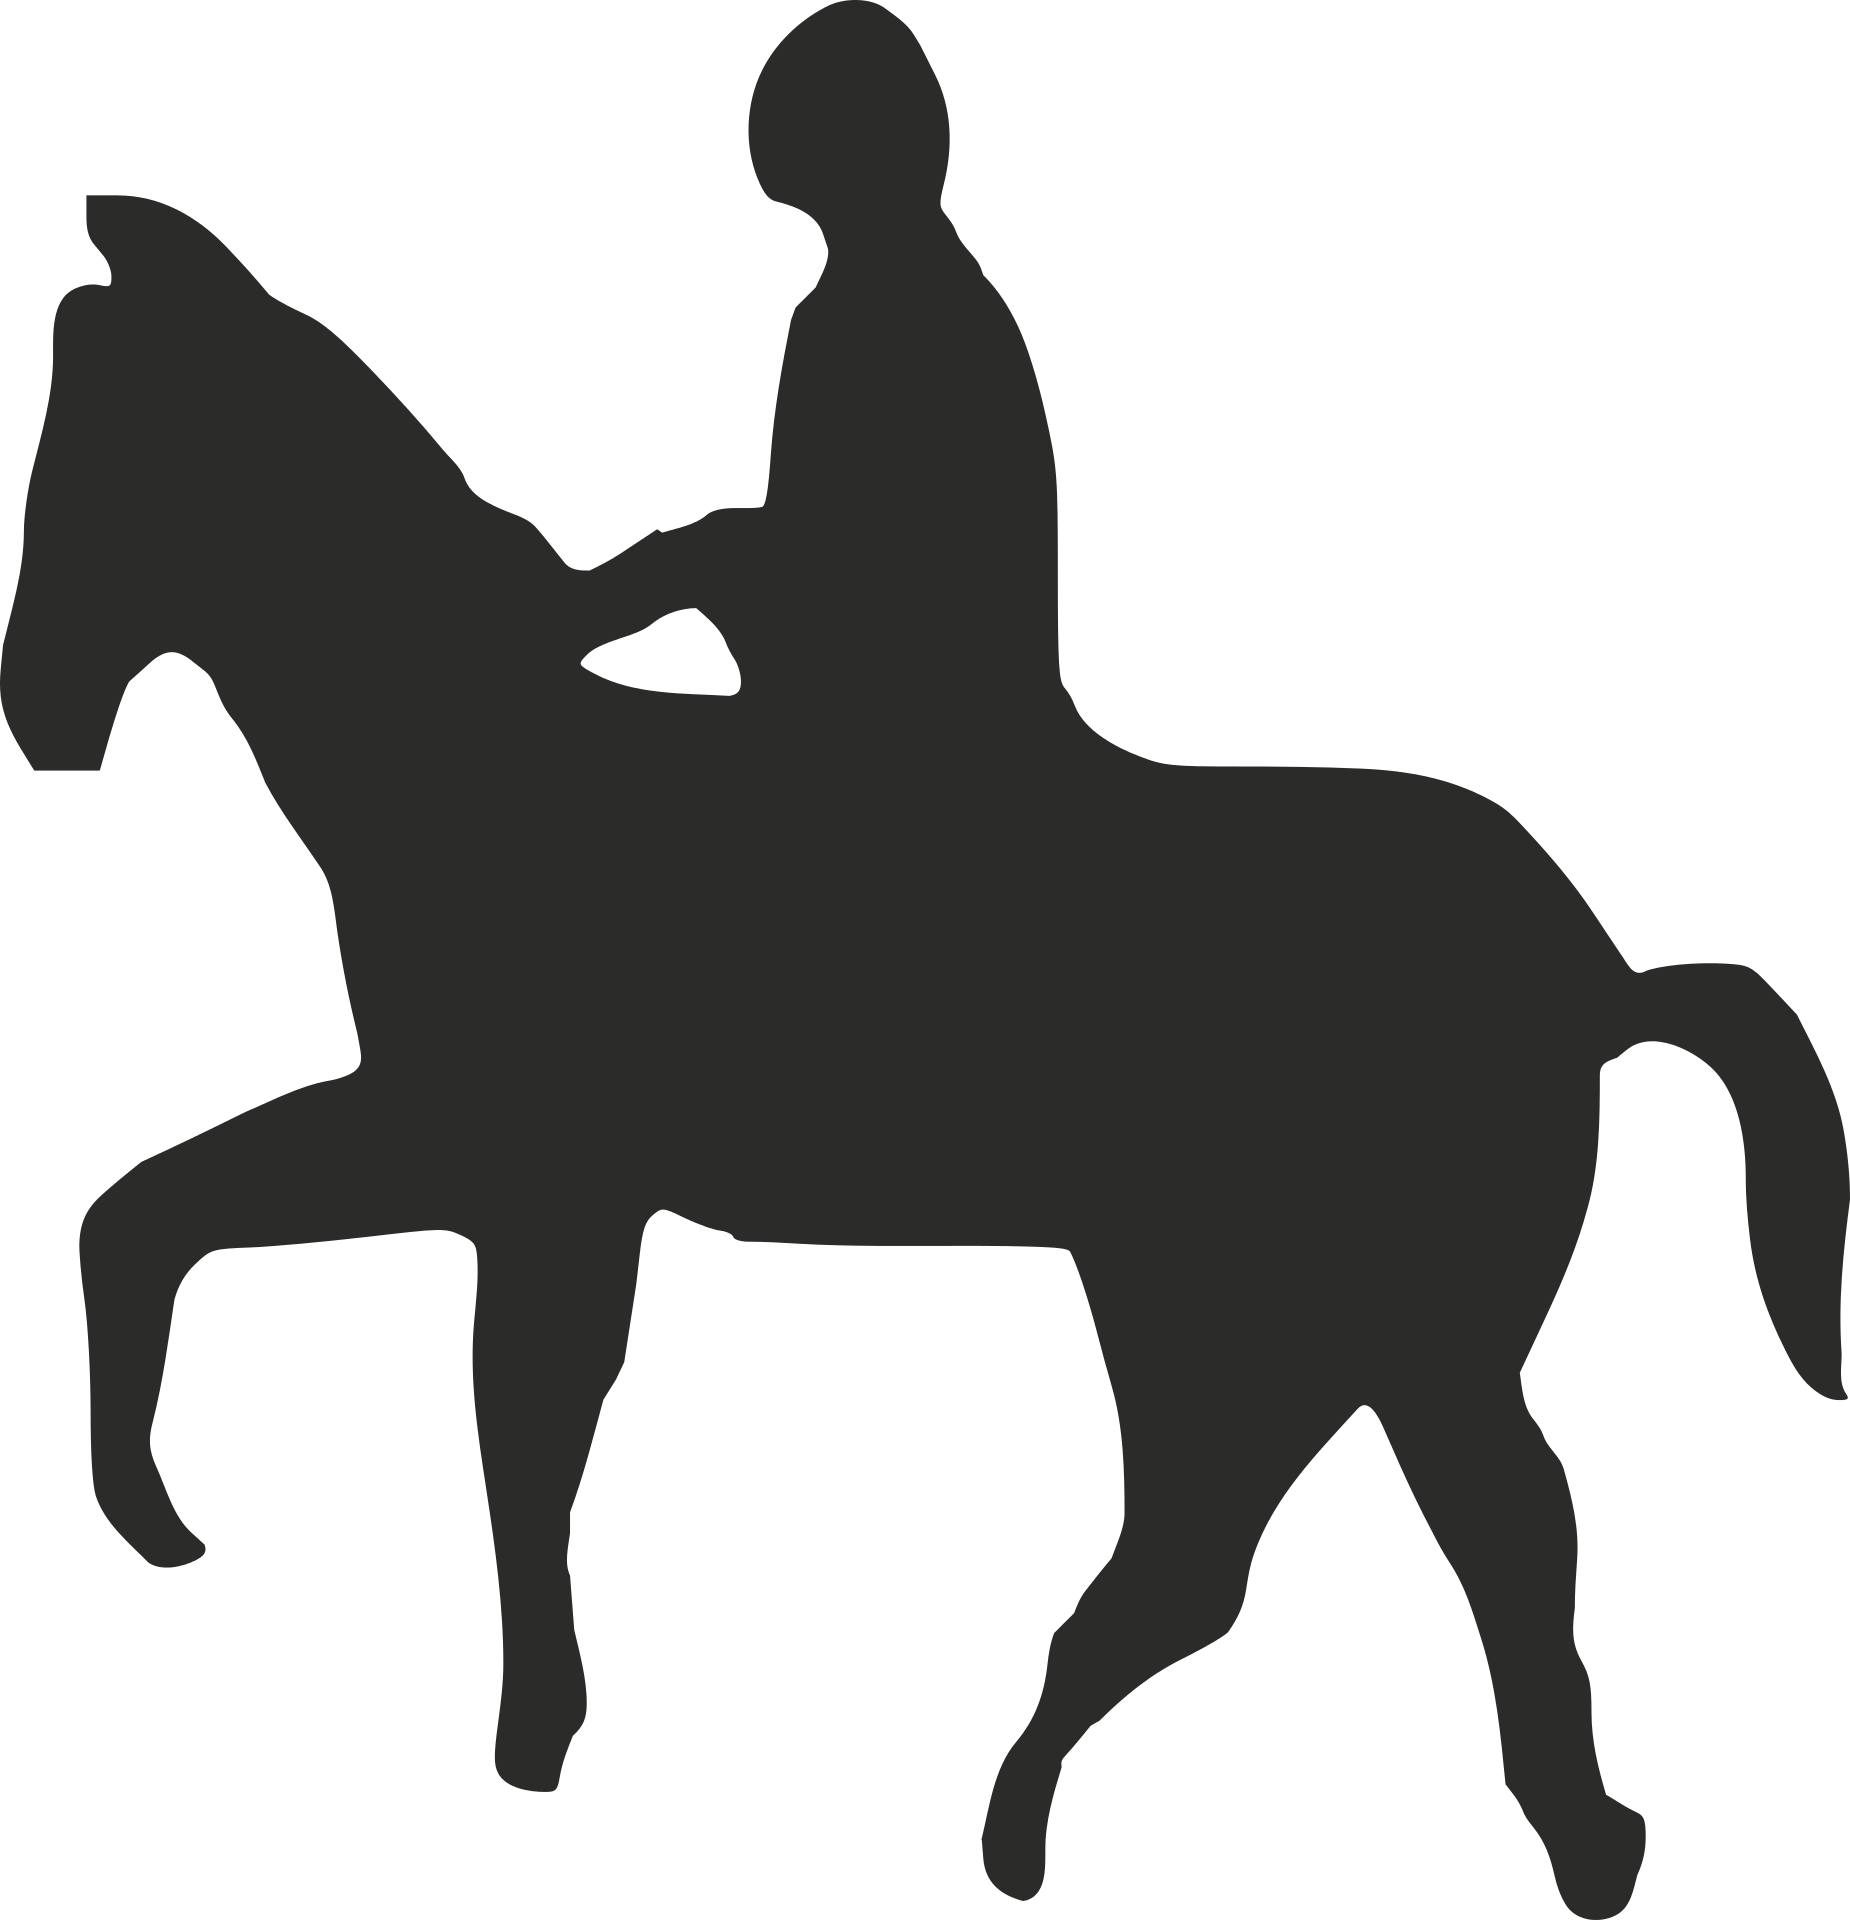 Horse equestrian english riding. Horses clipart therapy